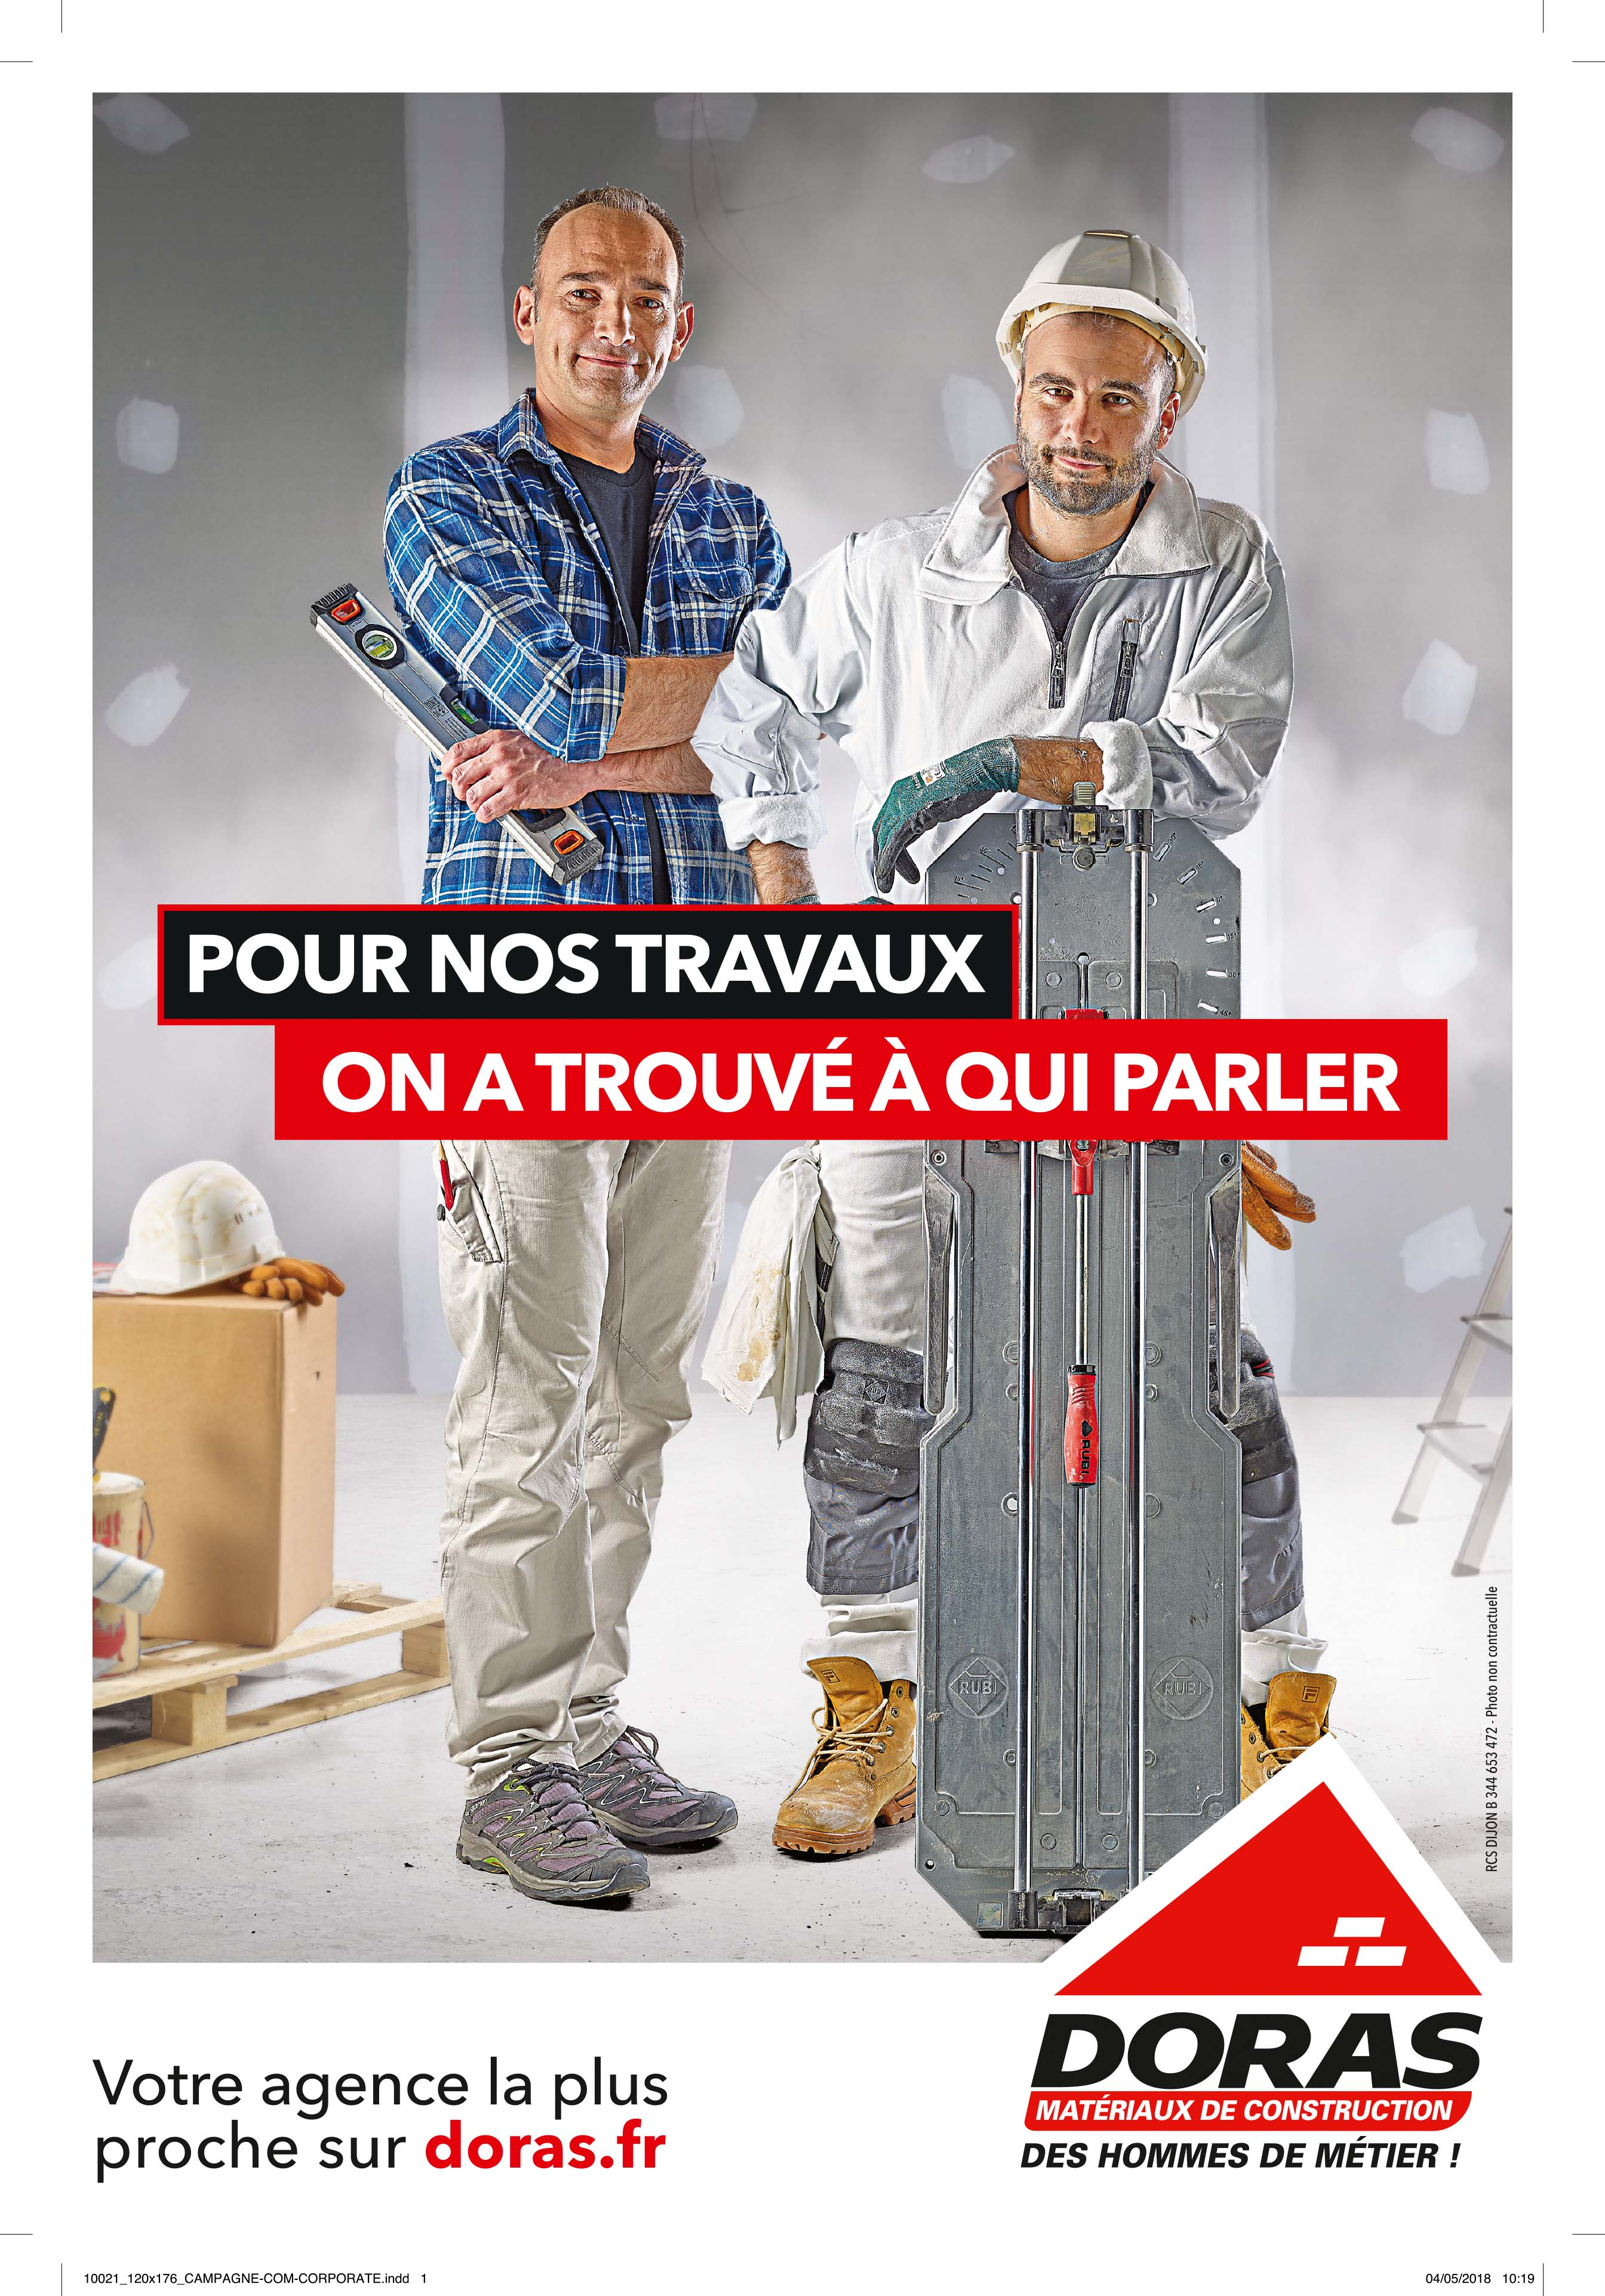 Nouvelle campagne corporate